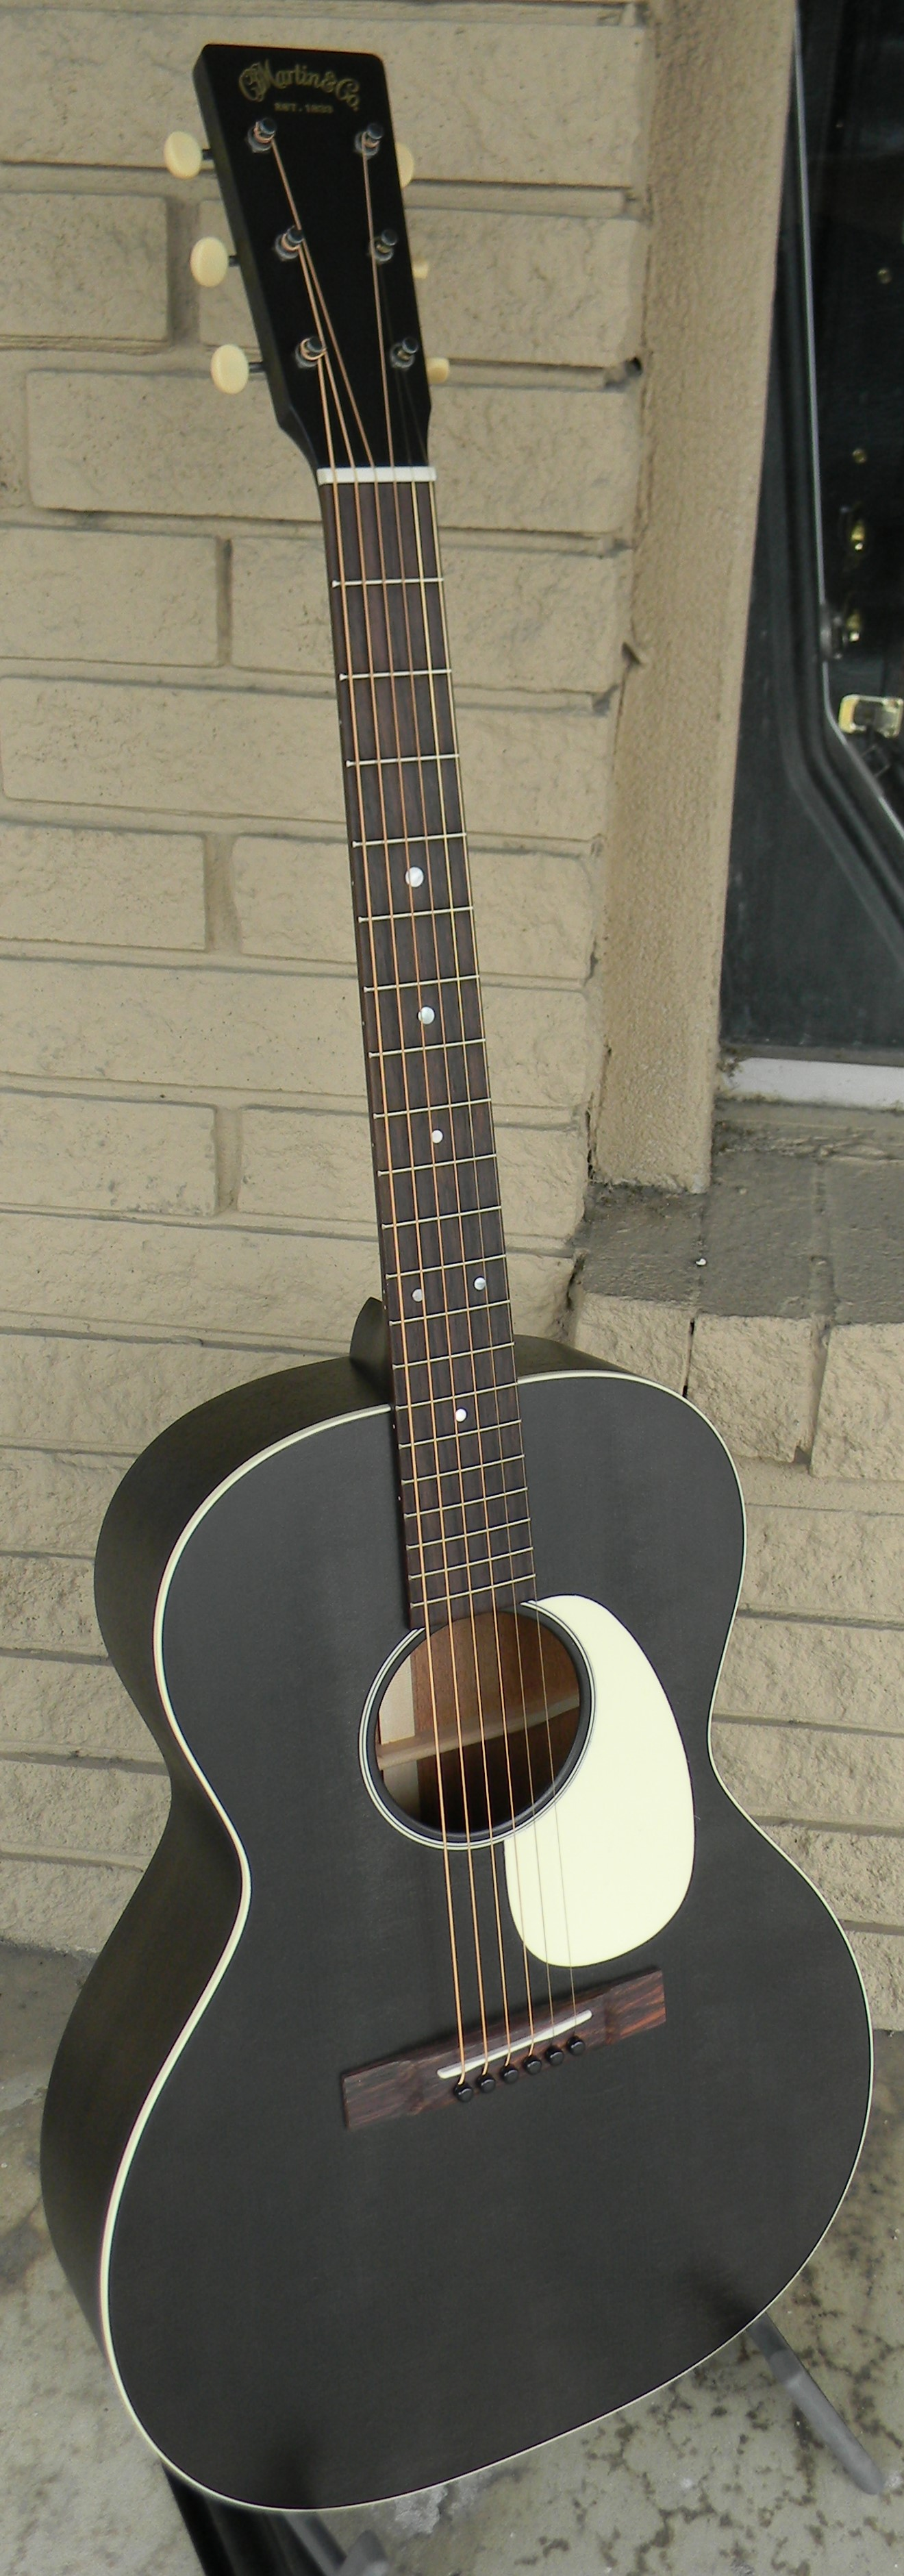 00-17L Black Smoke. Solid sitka spruce and mahogany. $1,859.00